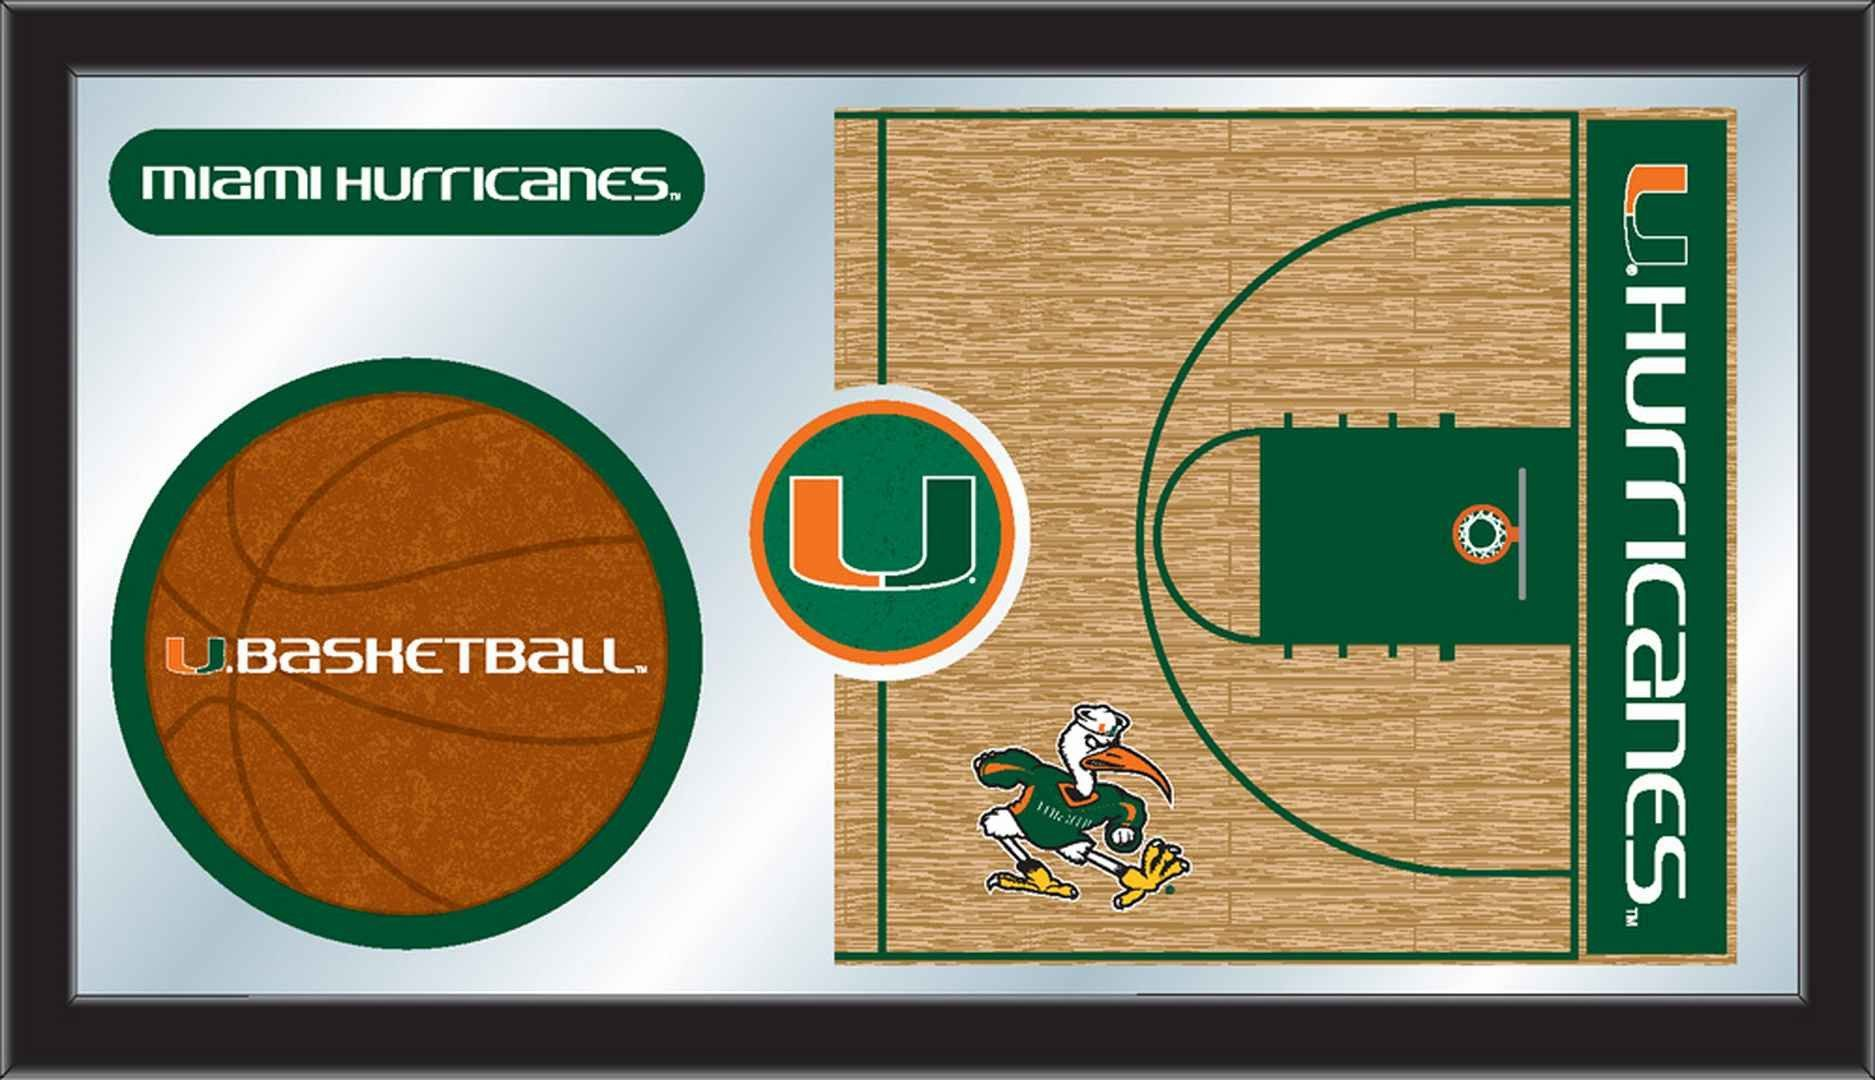 Basketball Mirror - University of Miami (FL) (With images ...